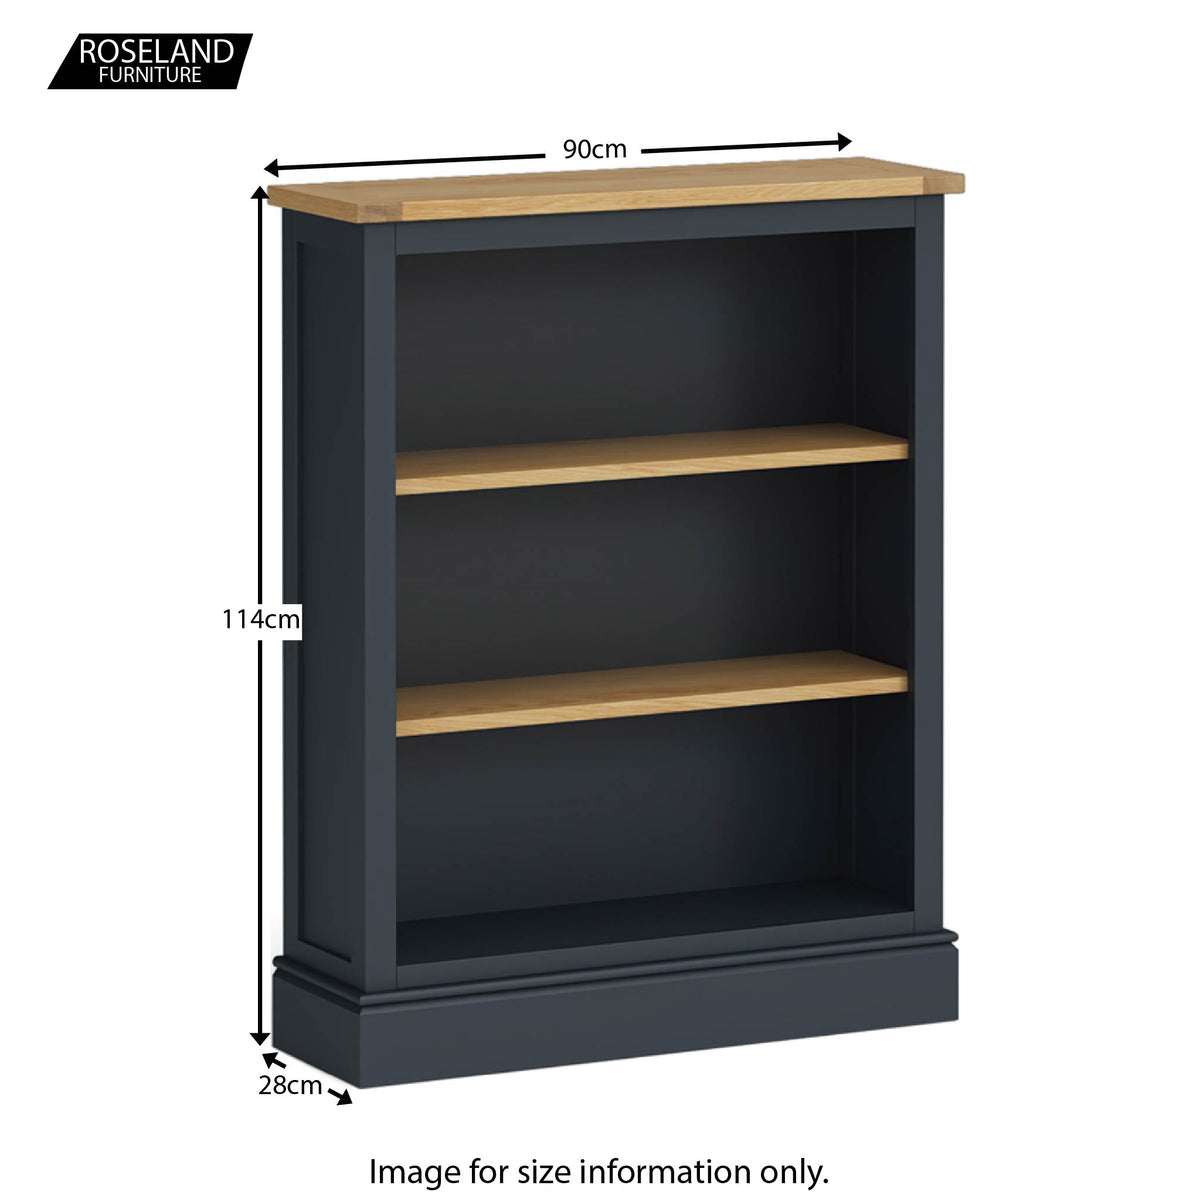 Chichester Small Bookcase in Charcoal - Size Guide